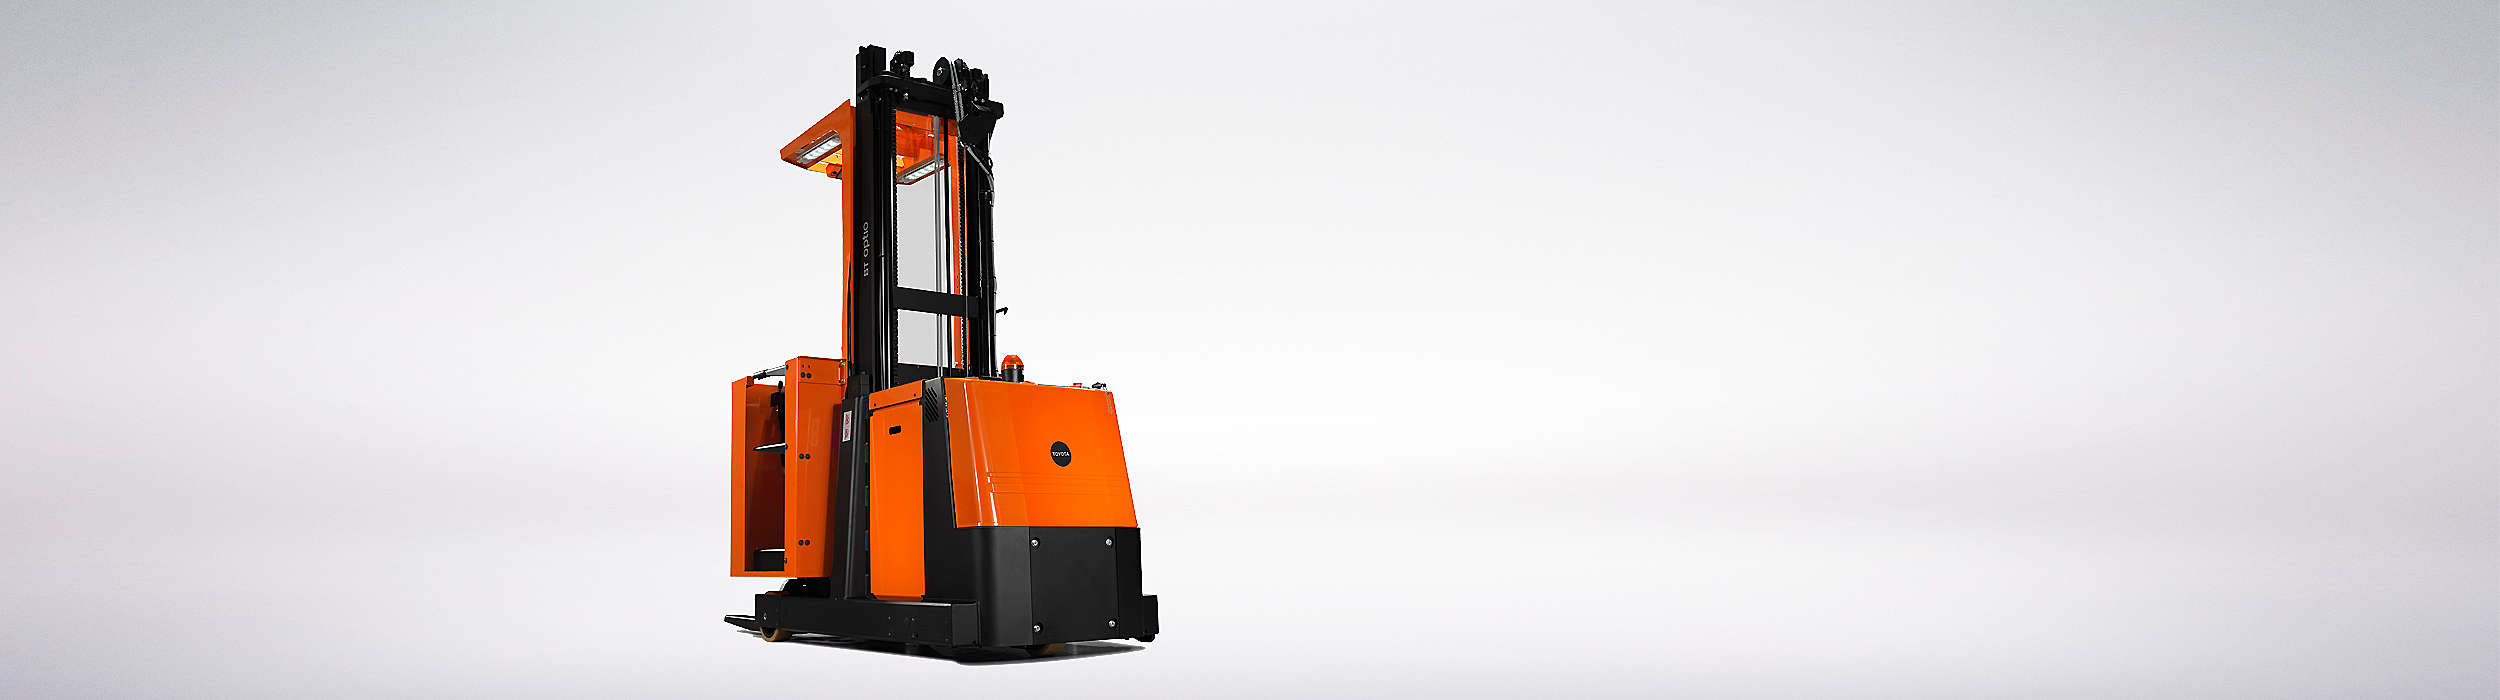 BT Optio M-series - Ideal for picking in confined operations.